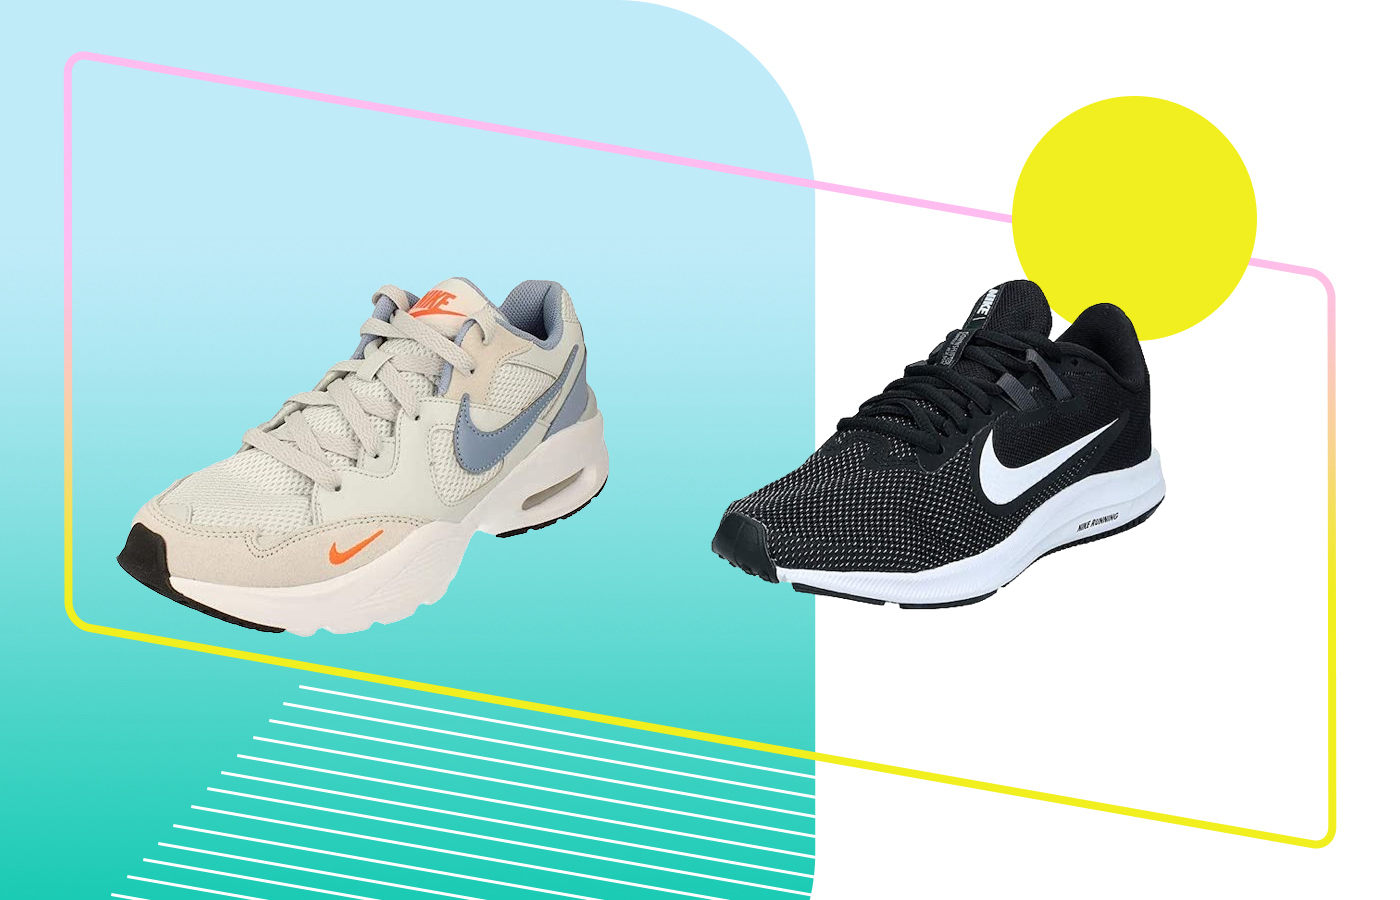 Psst! You can score Nike sneakers for less than $55 on Amazon